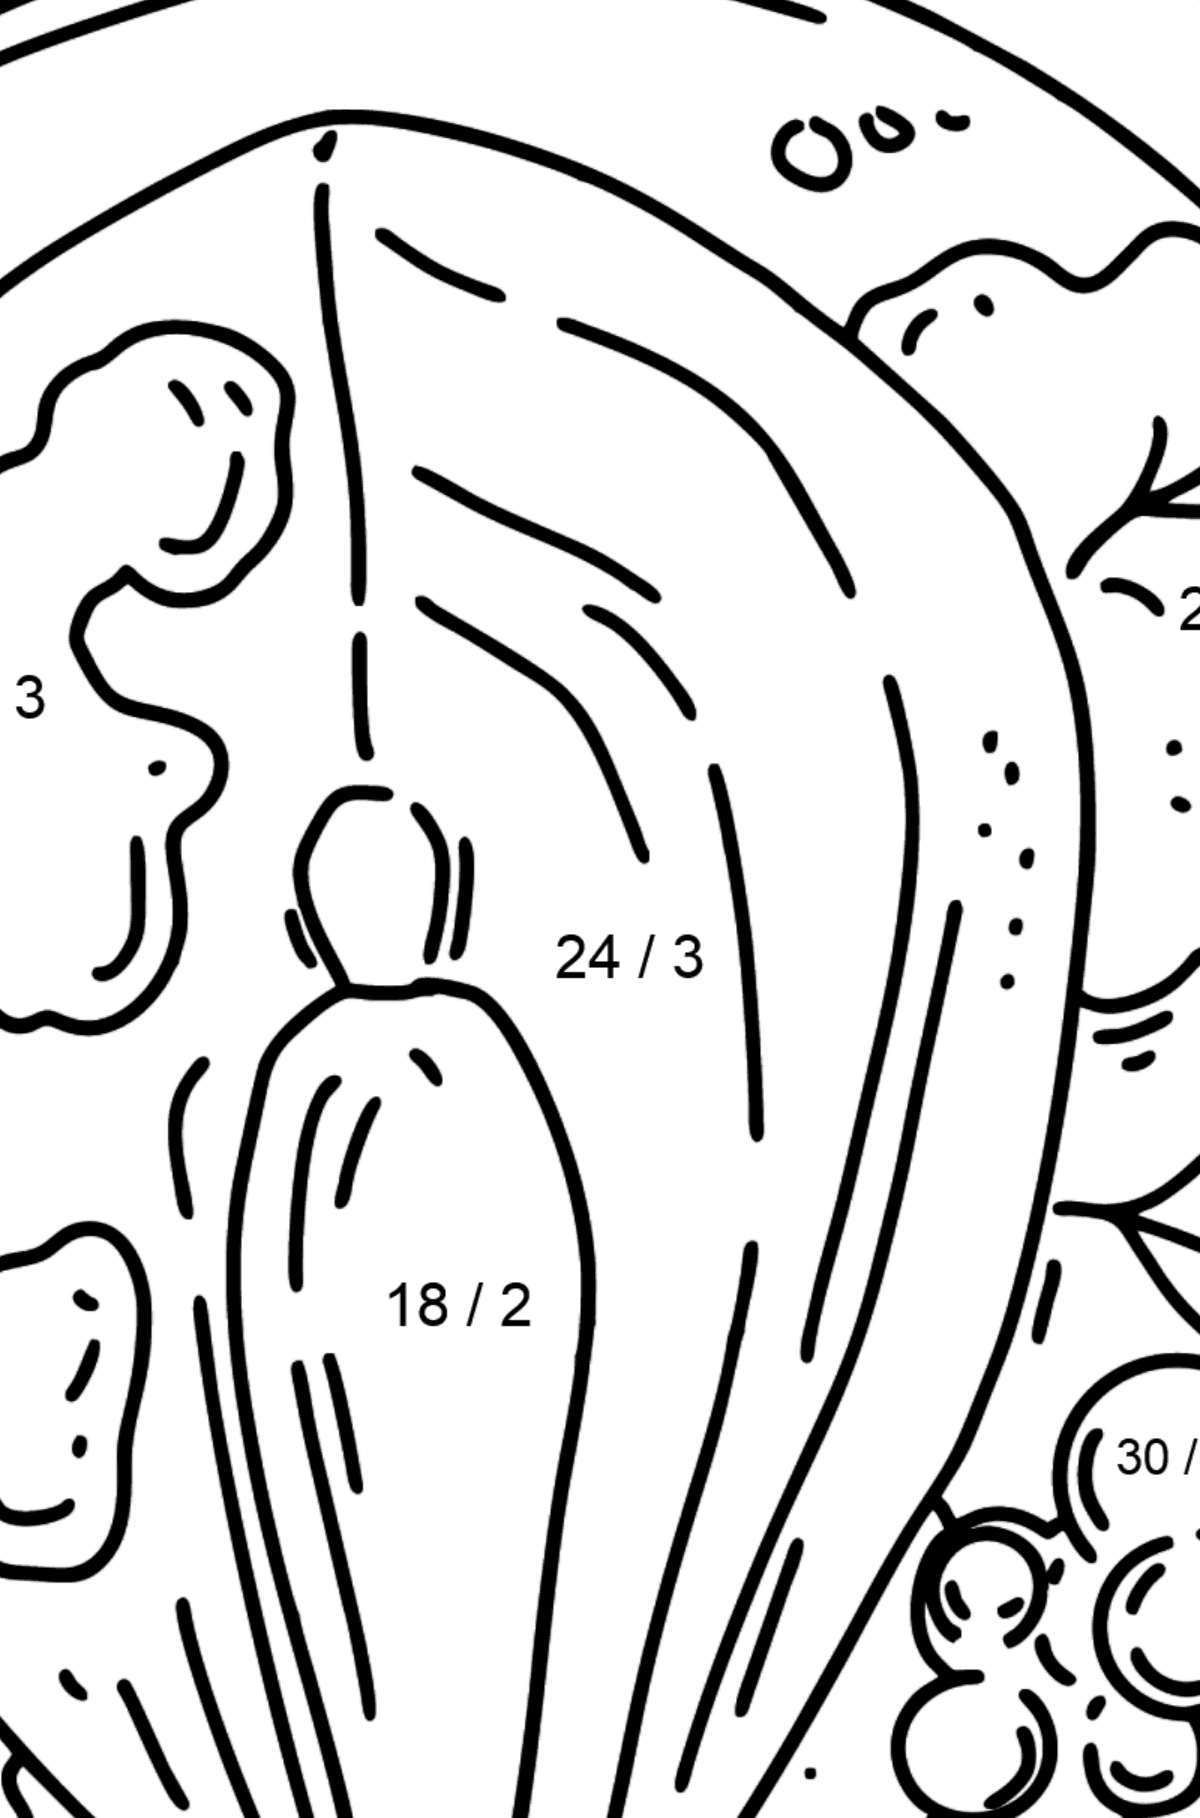 Dinner - Baked Trout coloring page - Math Coloring - Division for Kids